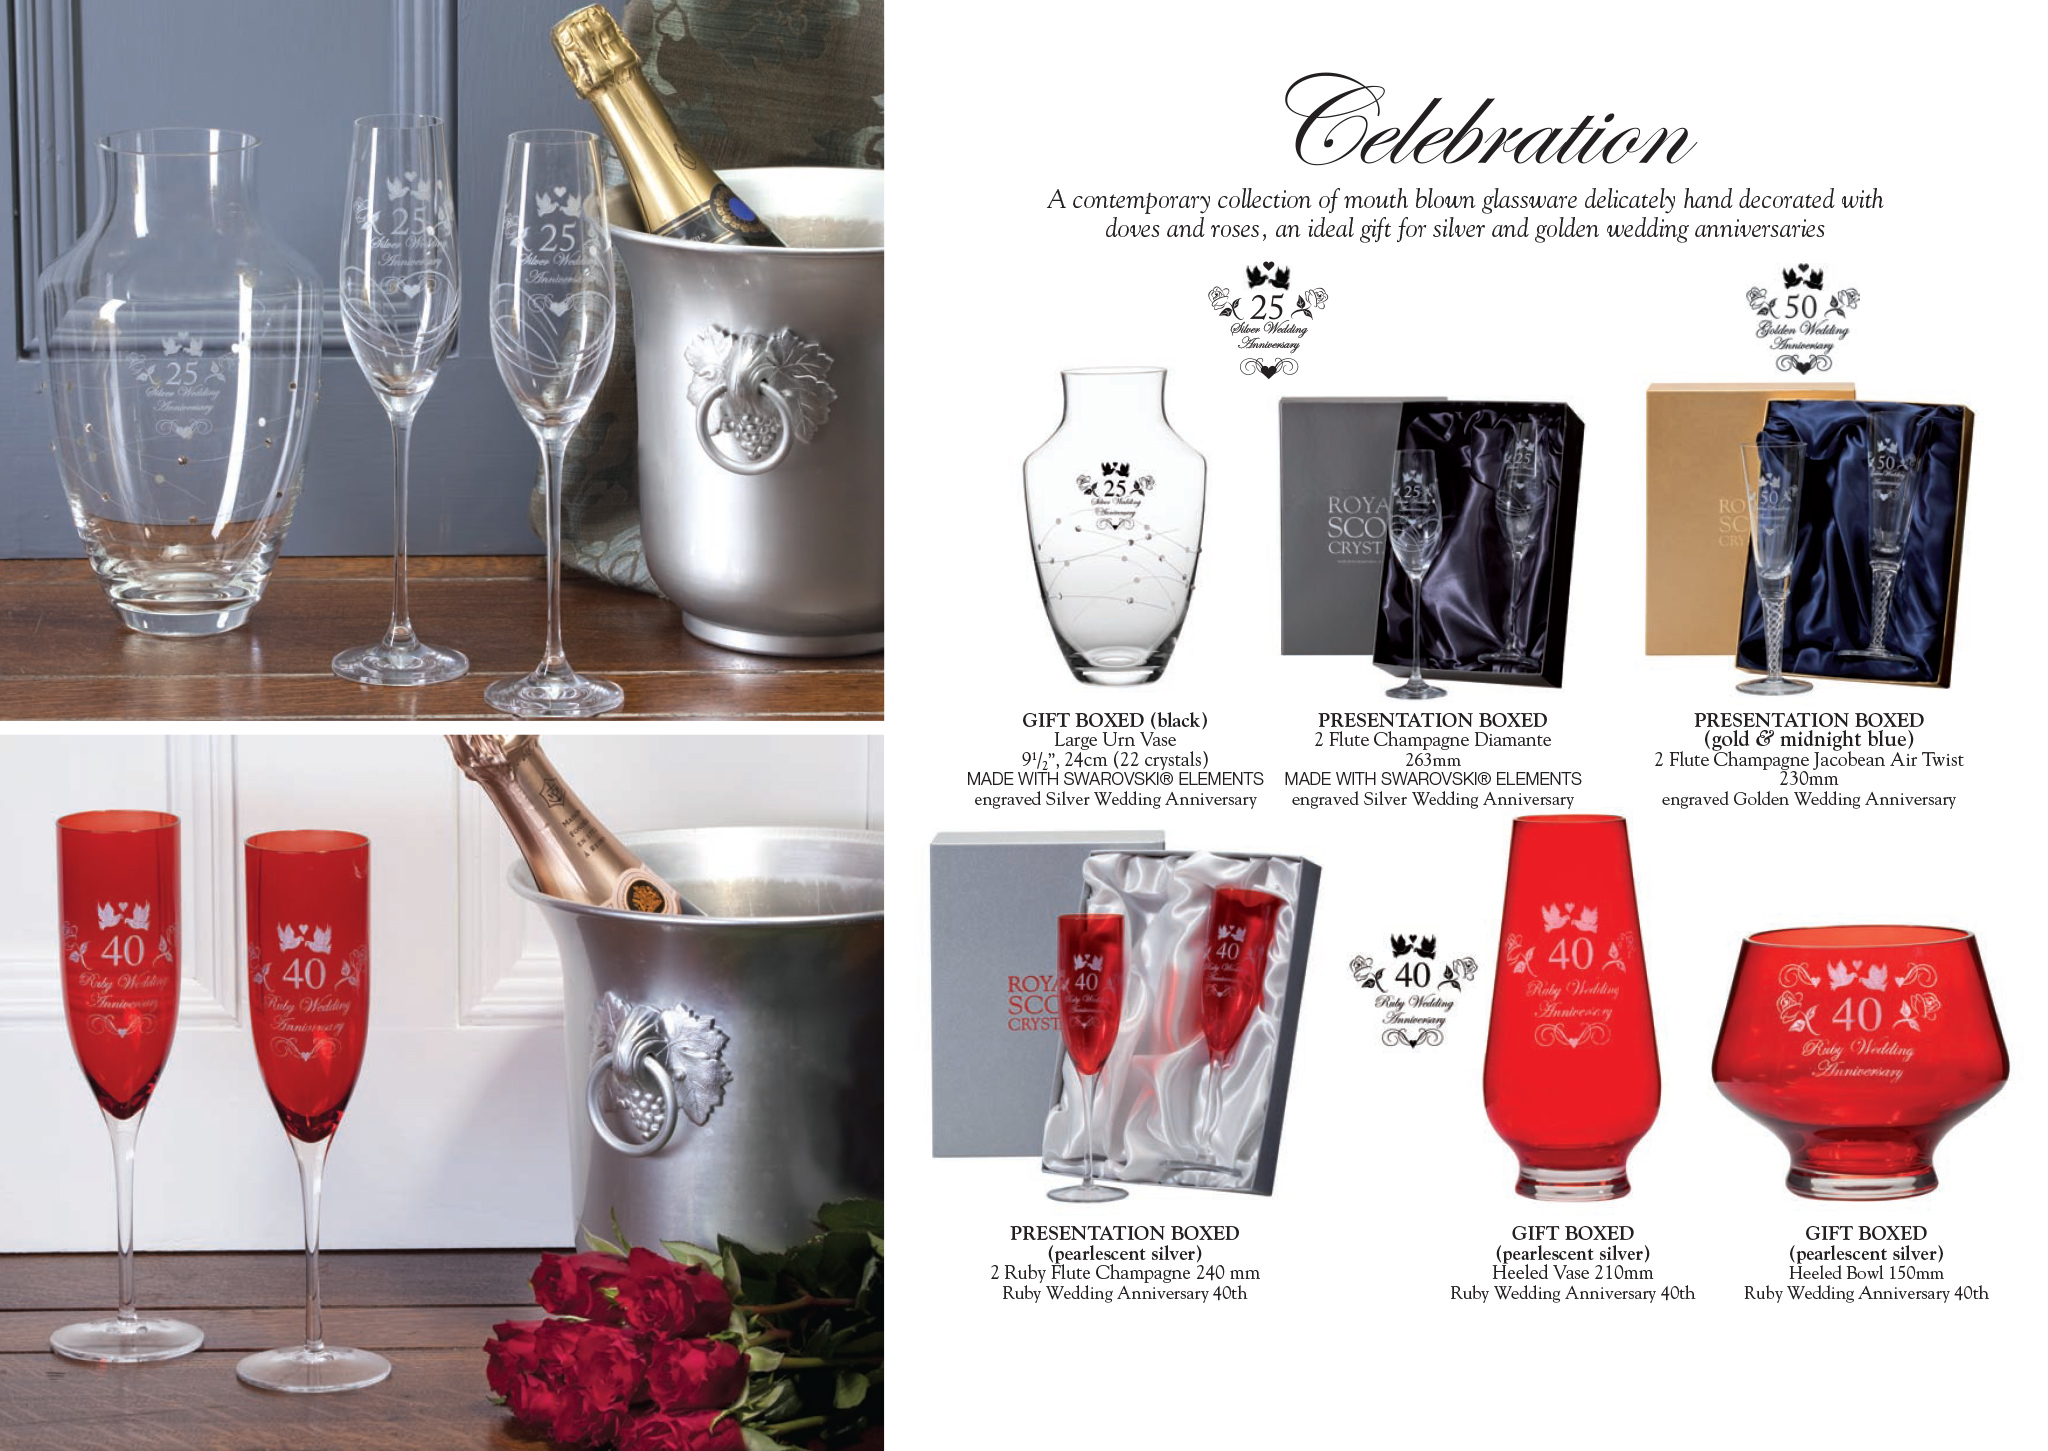 Royal Scot Crystal - Celebration